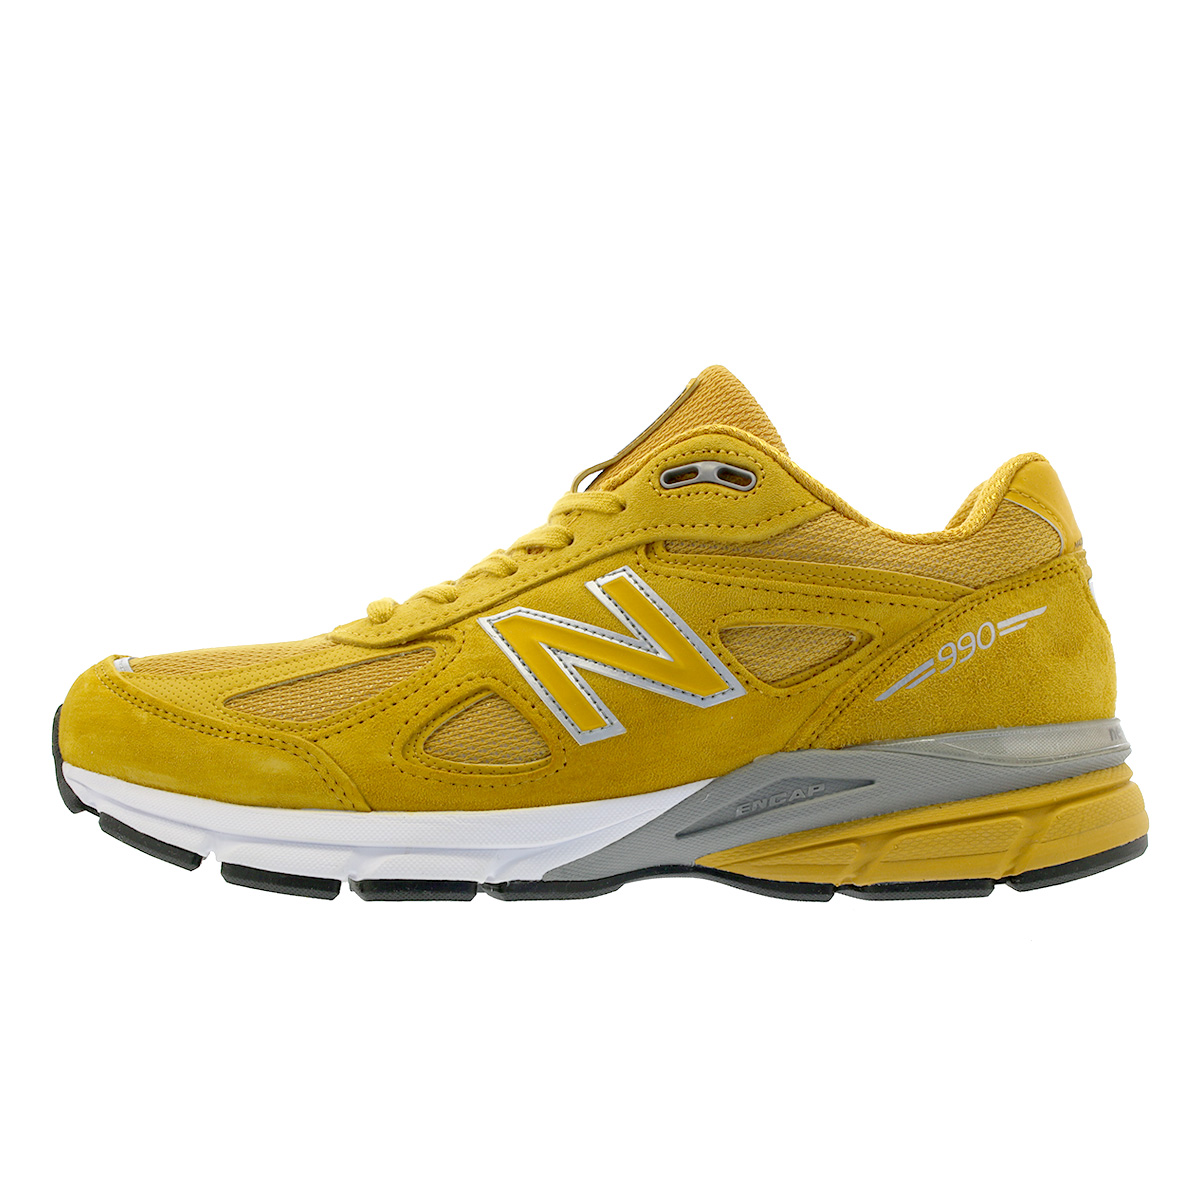 cheaper e519a 379c9 ... best price s.am990qk4yellow white  newbalancem990qk4madeinu.s.am990qk4yellow white ebc82 d7af1